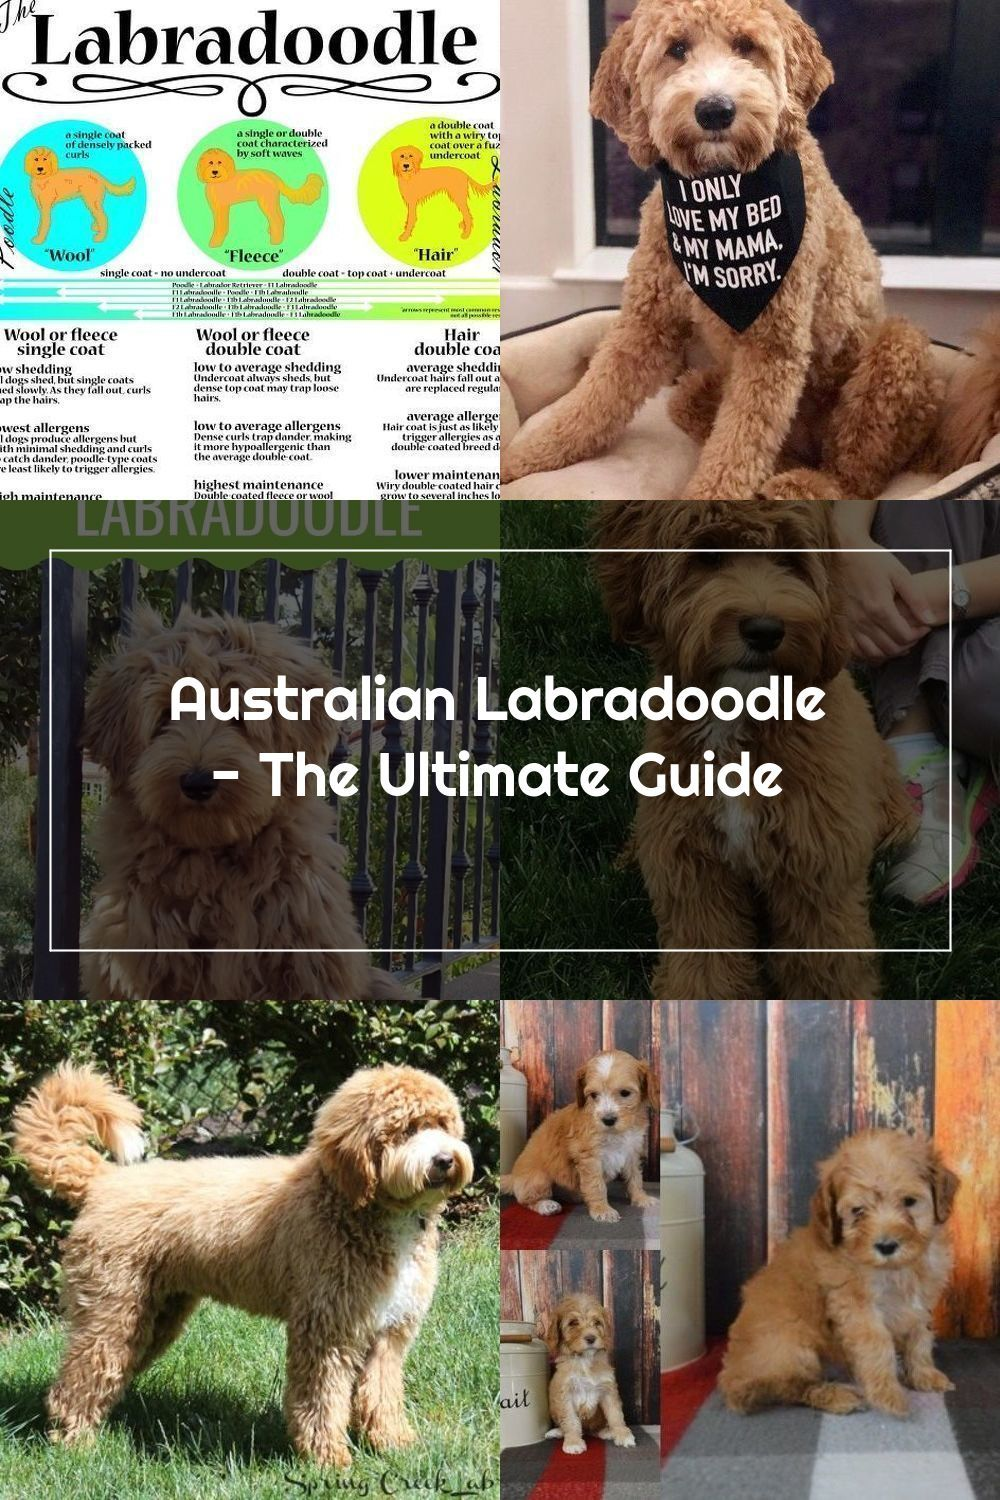 Did You Know That Aussie Labradoodles Are A Cross Of 6 Different Breeds Le In 2020 Labradoodle Australian Labradoodle Breeds